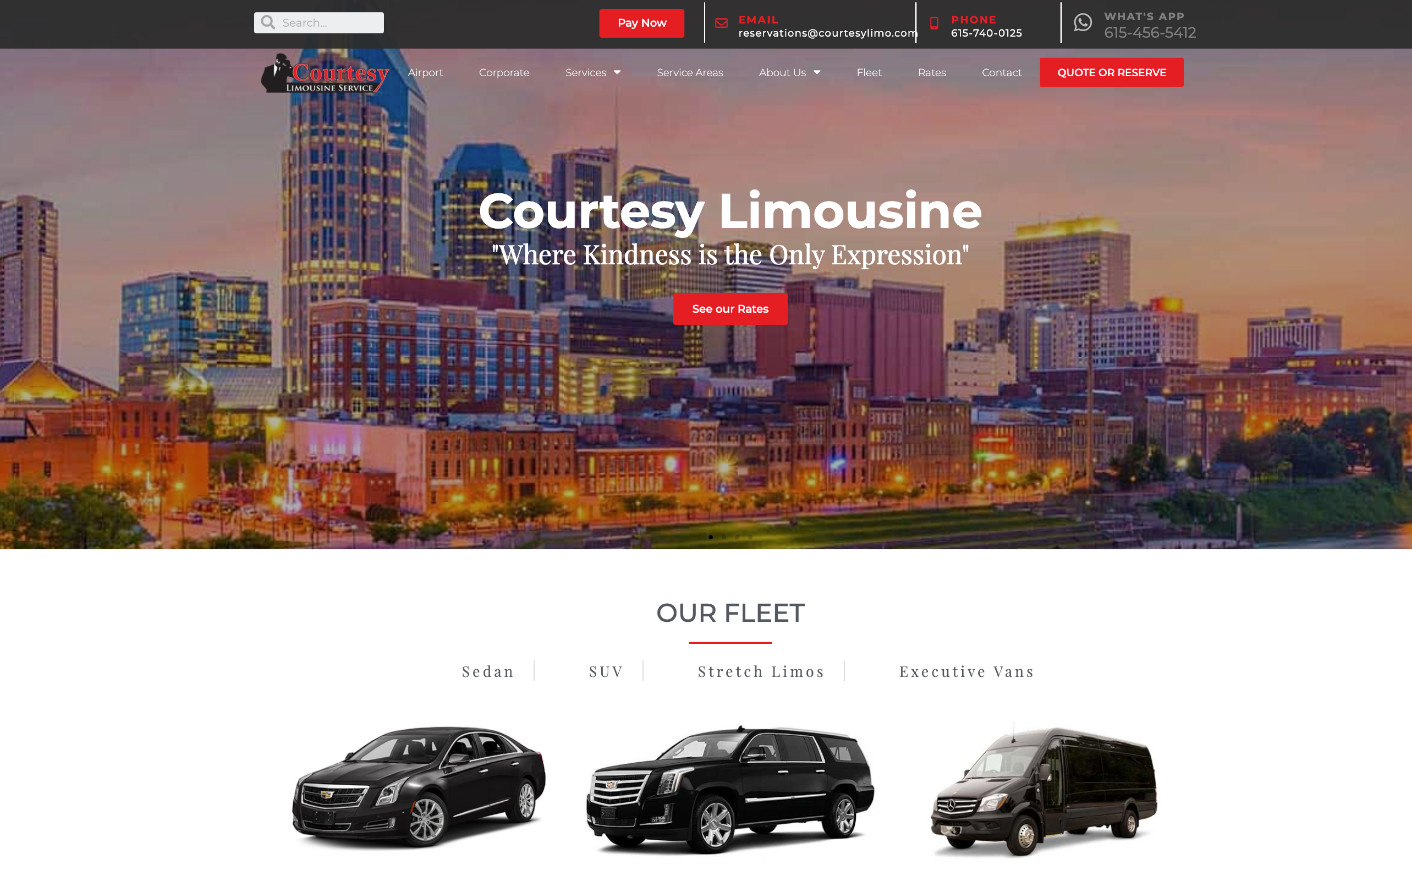 Homepage of Courtesy Limousine website